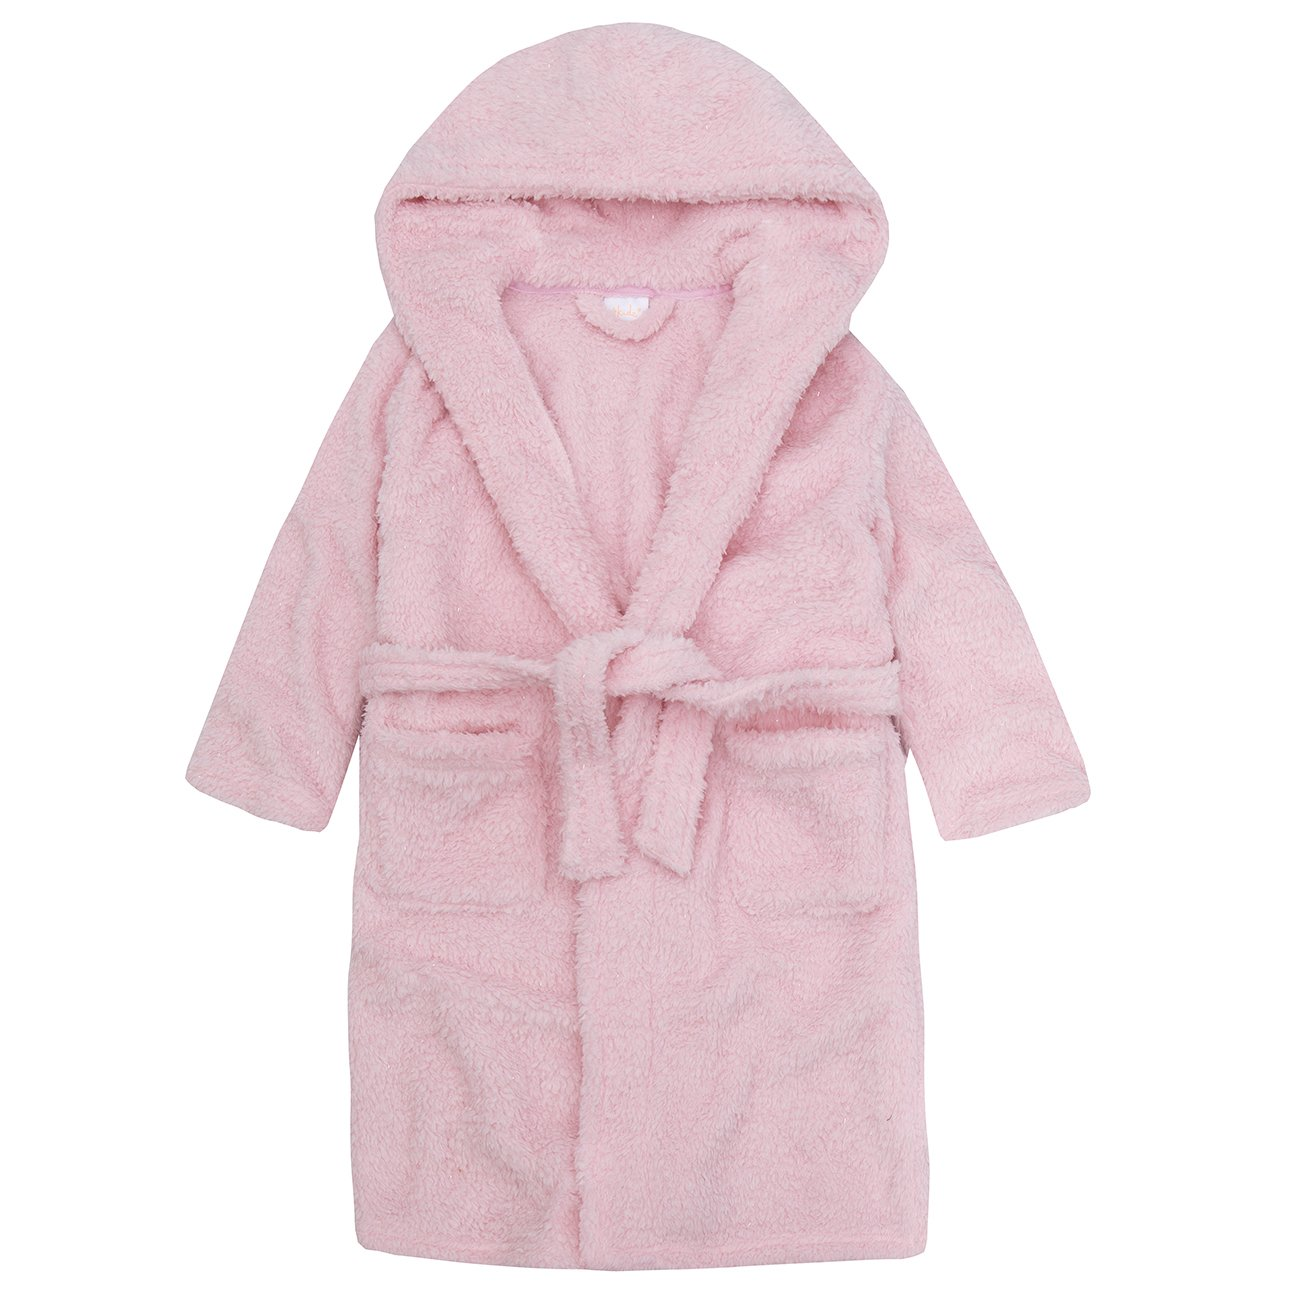 4Kidz Infant Girls Sparkle Snuggle Fleece Dressing Gown - Hooded Robe Nightwear